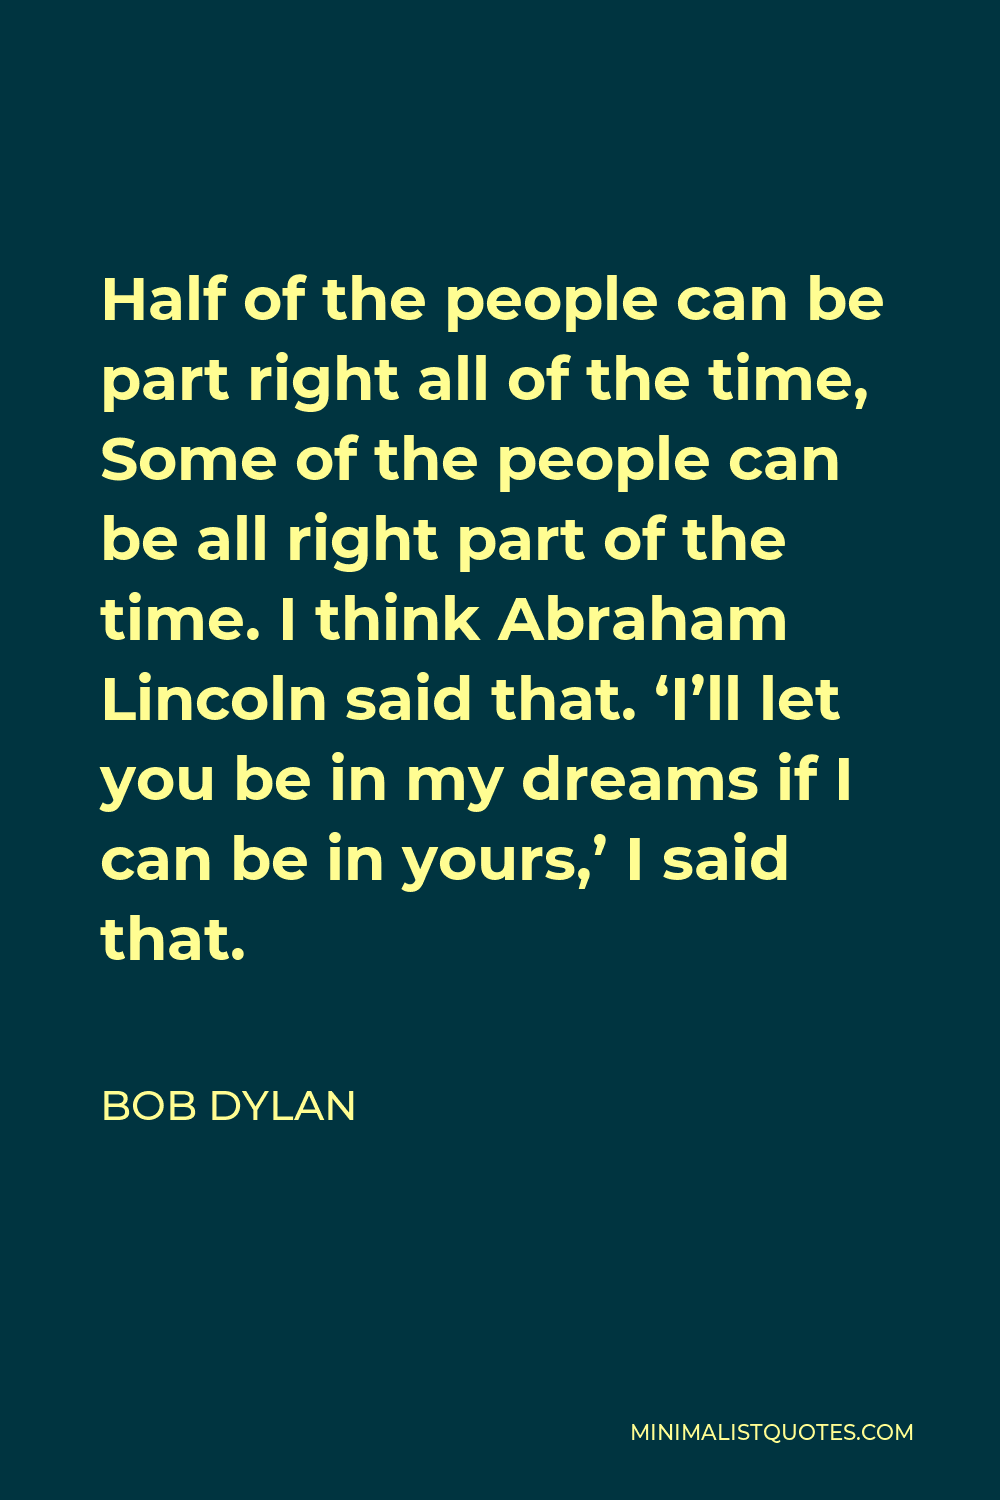 Bob Dylan Quote - Half of the people can be part right all of the time, Some of the people can be all right part of the time. I think Abraham Lincoln said that. 'I'll let you be in my dreams if I can be in yours,' I said that.